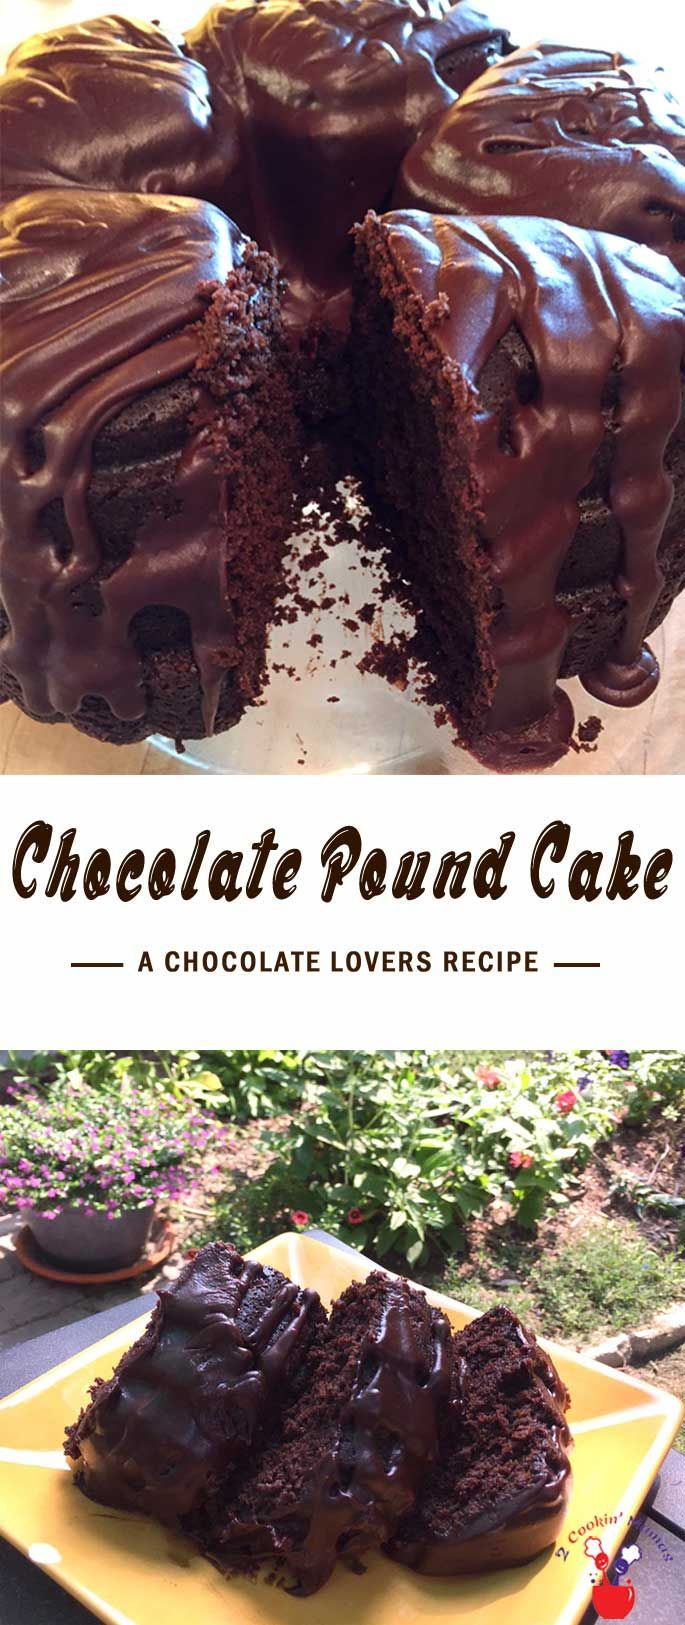 How do you make moist chocolate pound cake?